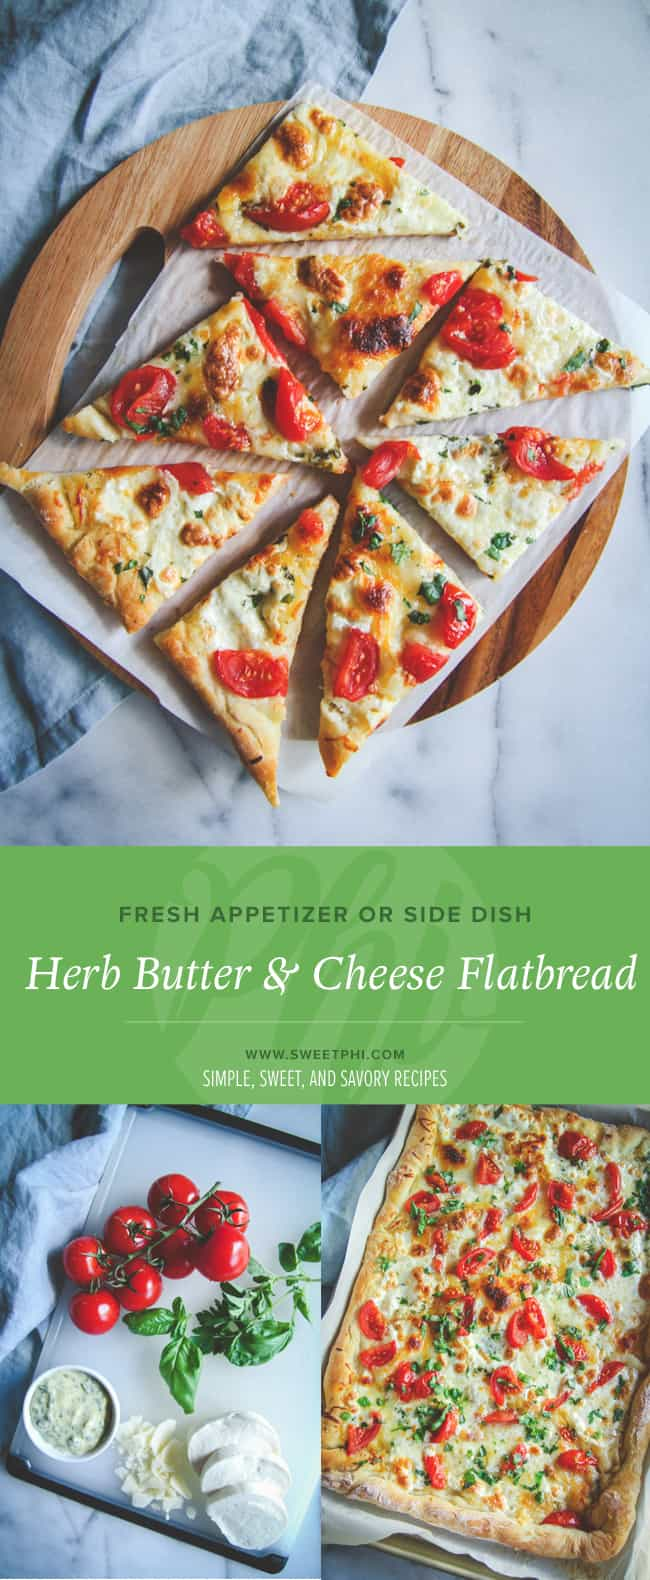 Make a tasty fresh herb butter to add to this flatbread